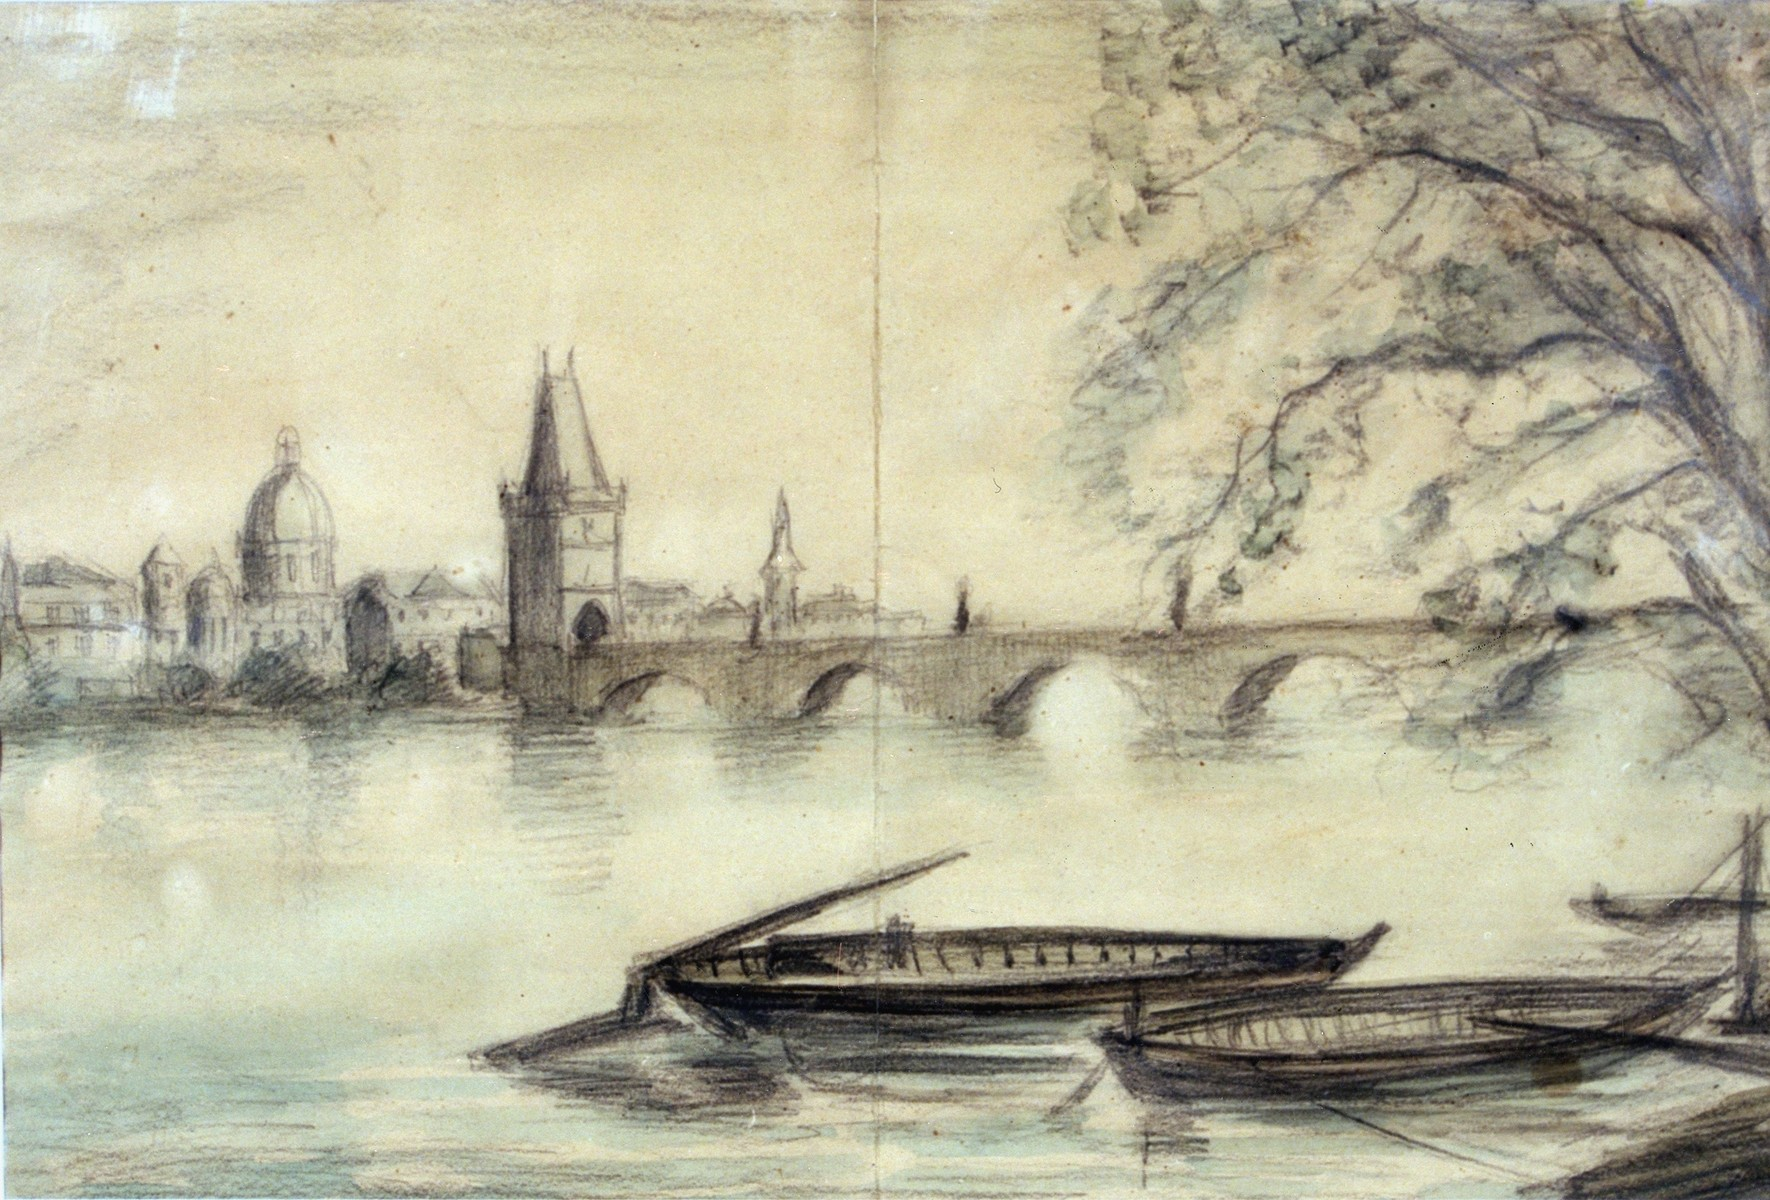 Painting of the Vltava River in Prague drawn from a photograph by Theresienstadt prisoner Bedrich Fritta.